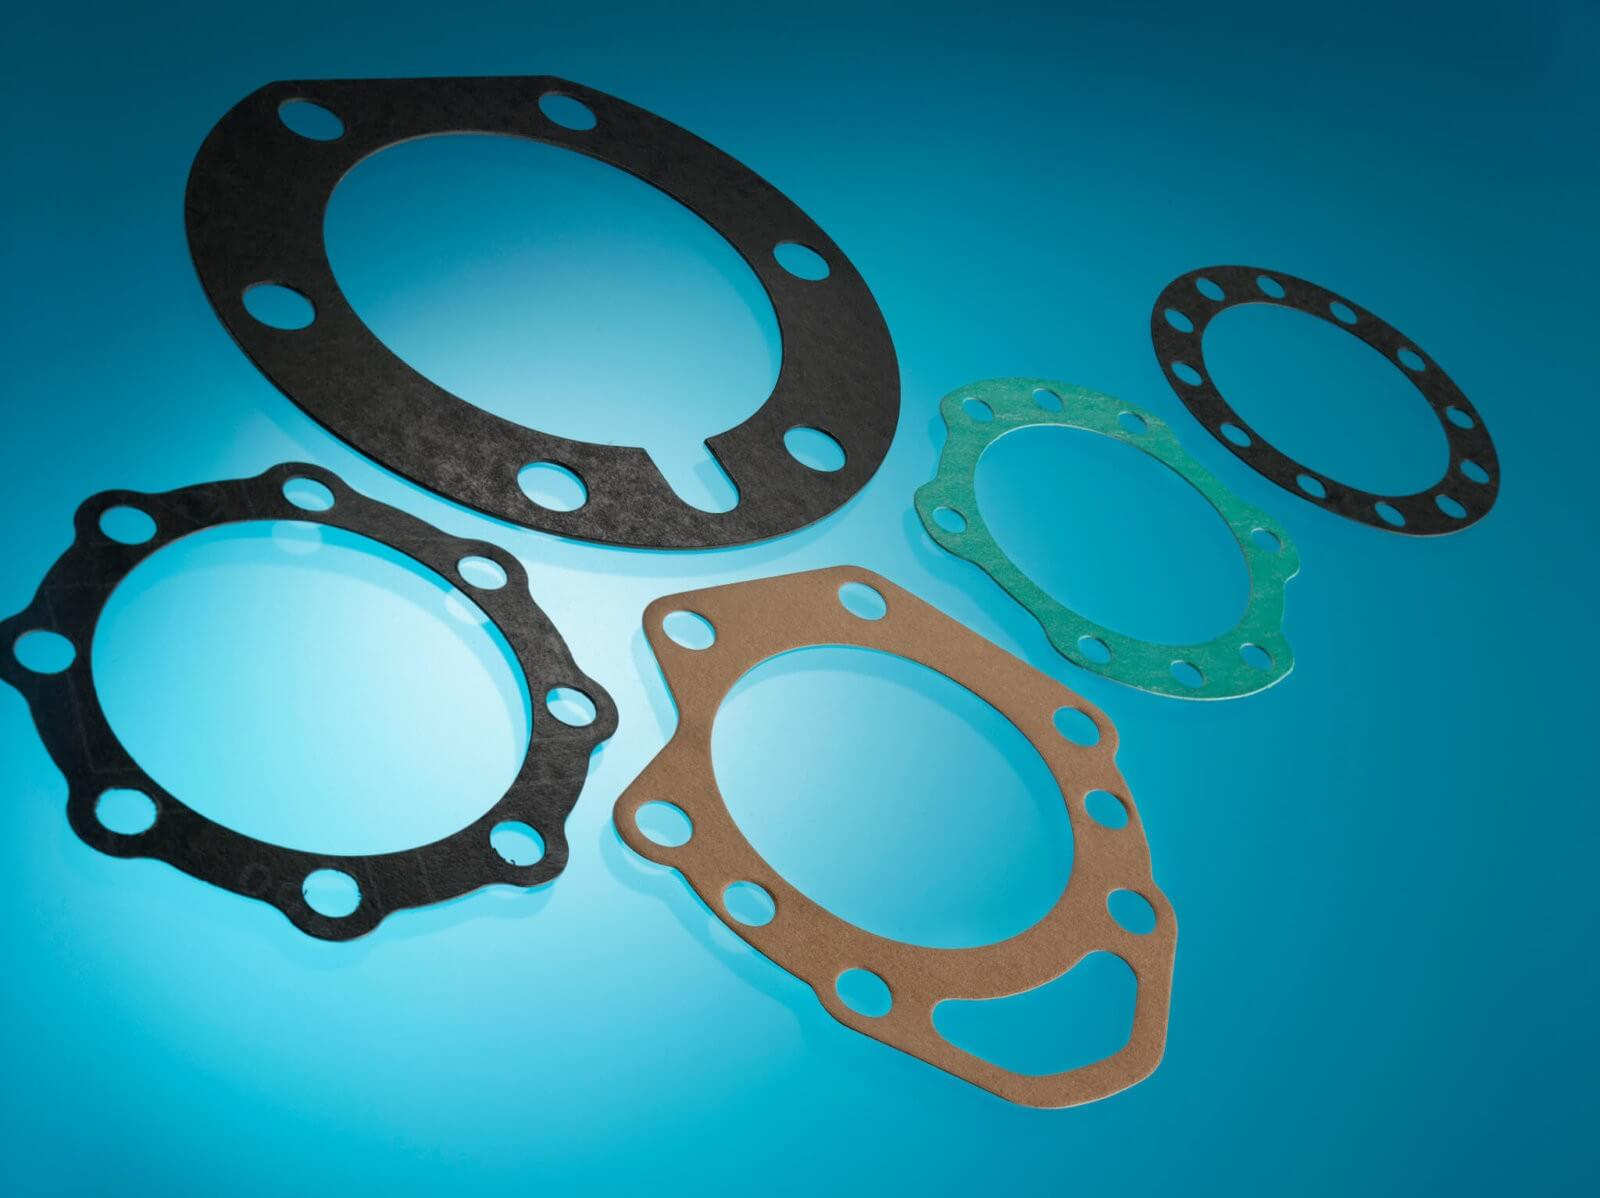 Automotive Parts Gasket. Gaskets made in Metal, Cellulose Pape, Composite, Shim Steel materials.